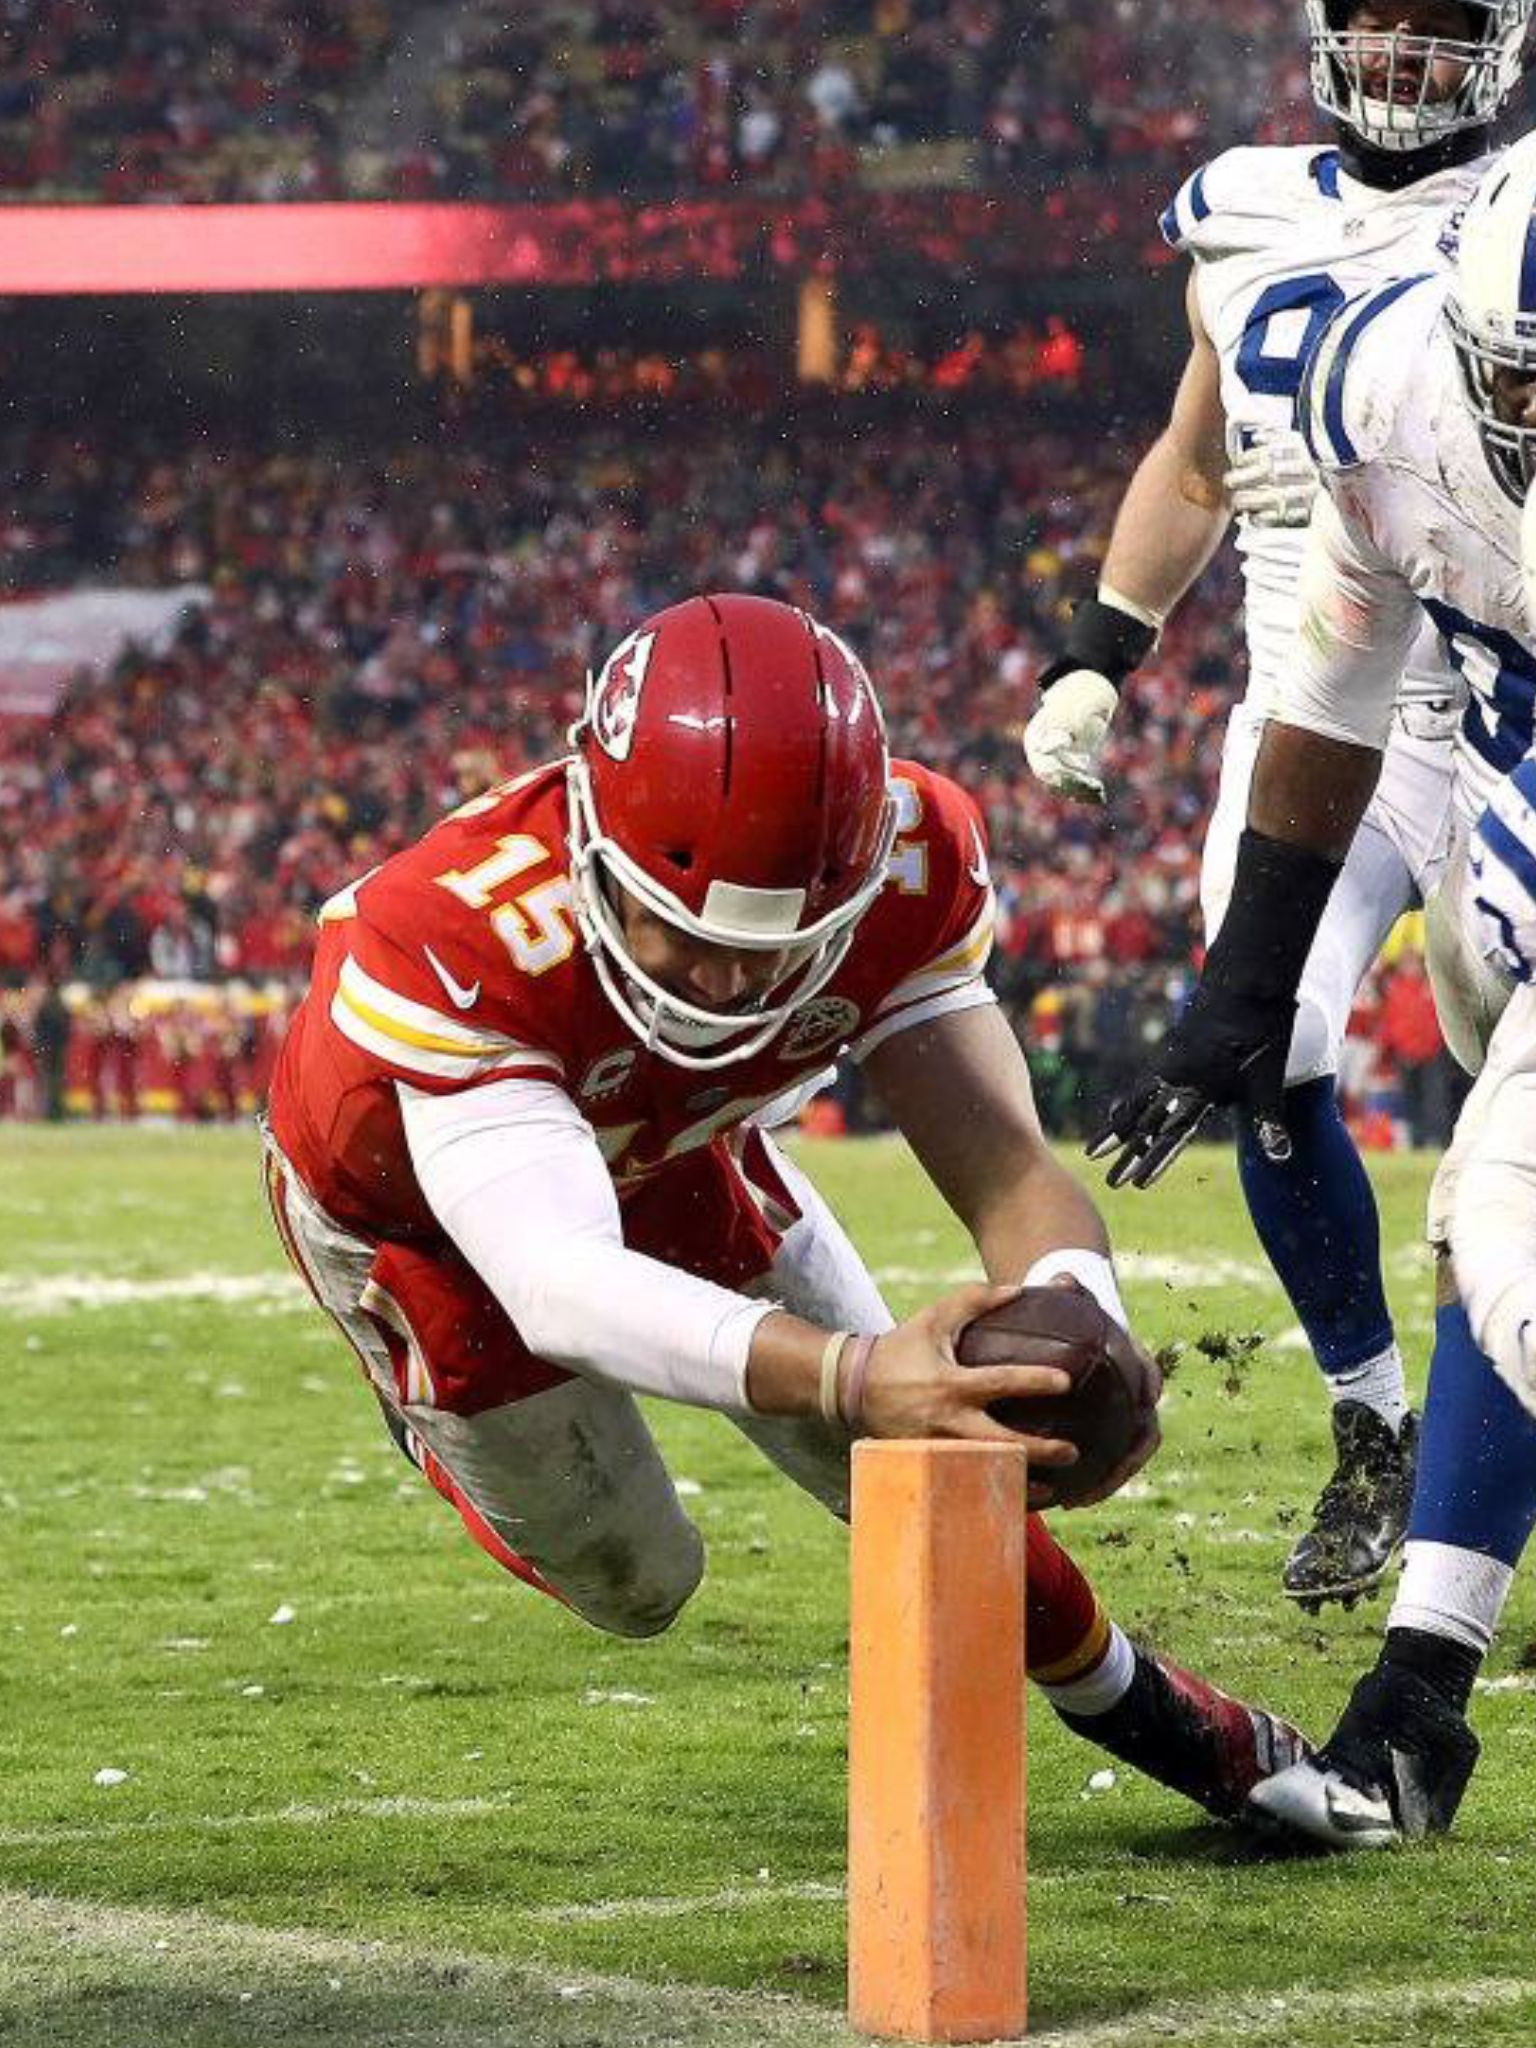 Chief Diving For The Corner Vs Colts 2019 Playoff Game Chiefs Football Kansas City Chiefs Football Nfl History